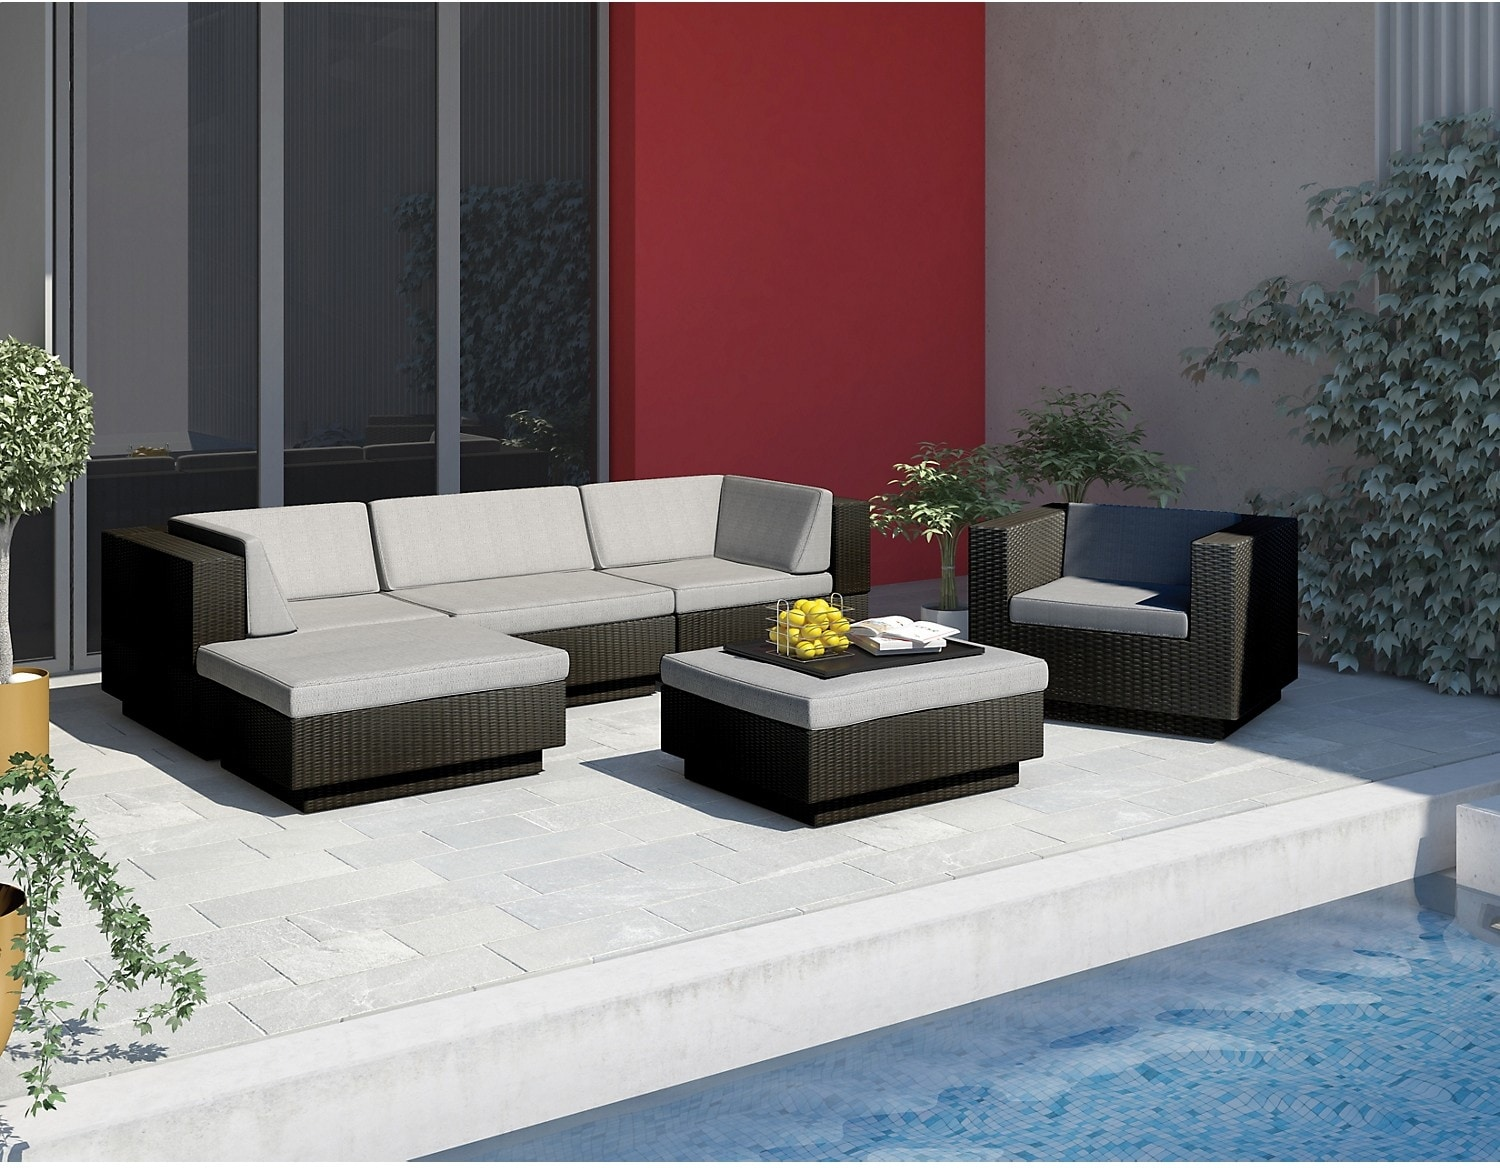 Park Terrace 6 Piece Patio Set – Black